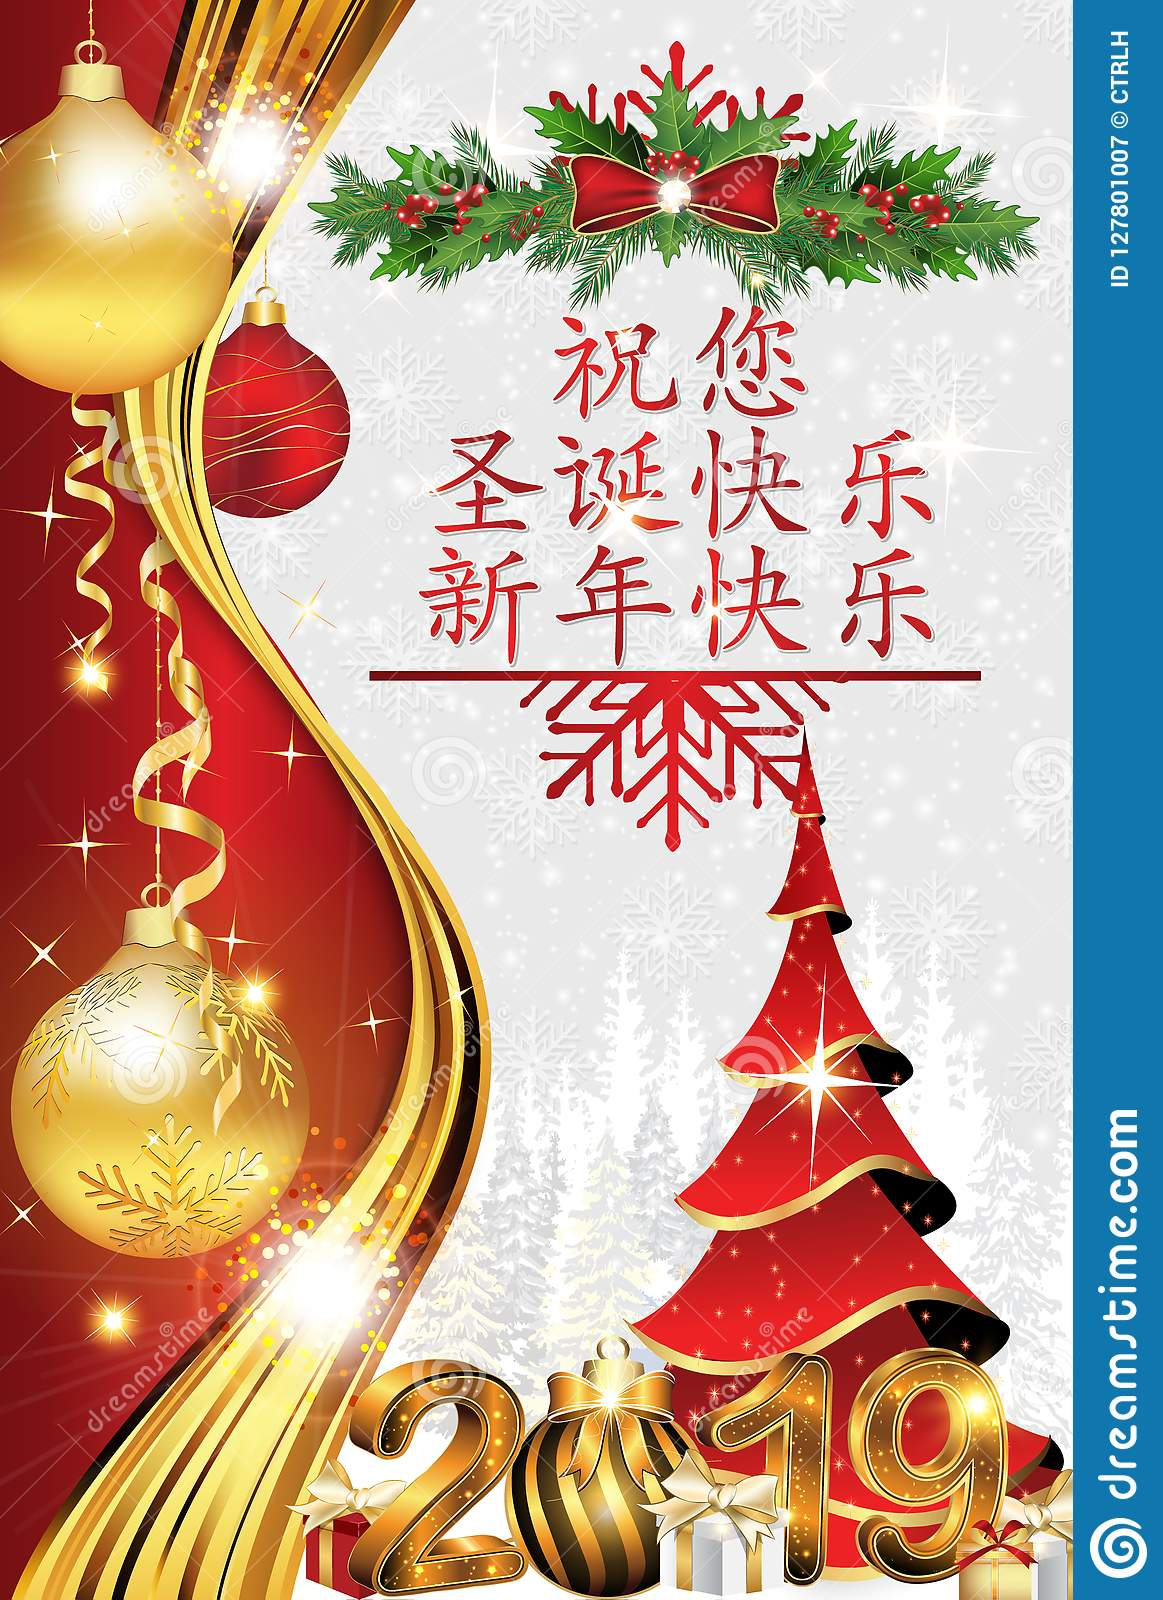 merry christmas and happy new year 2019 greeting card with chinese text